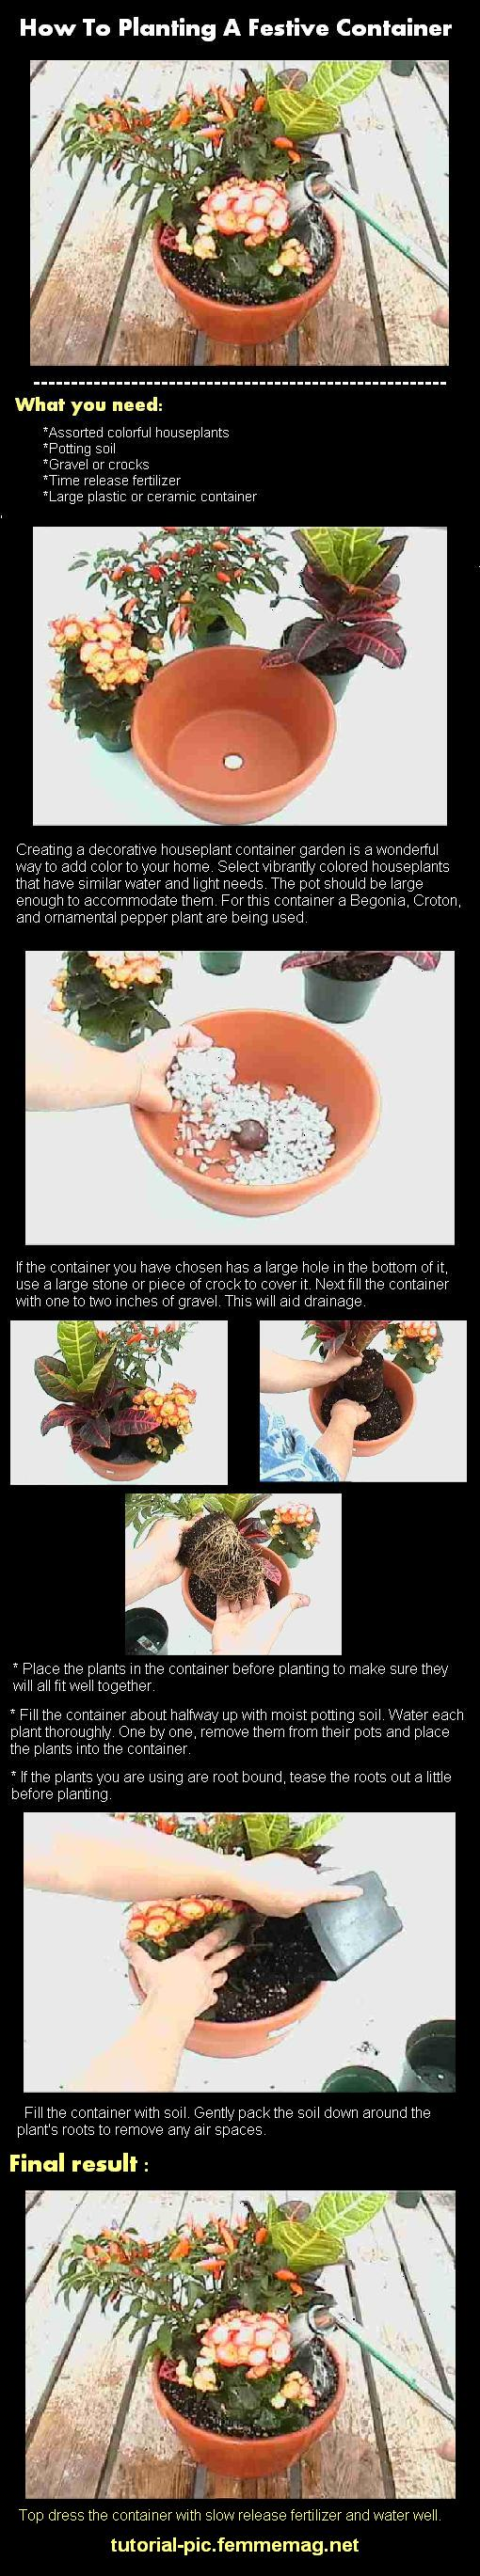 How To Planting A Festive Container | tutorial in picture